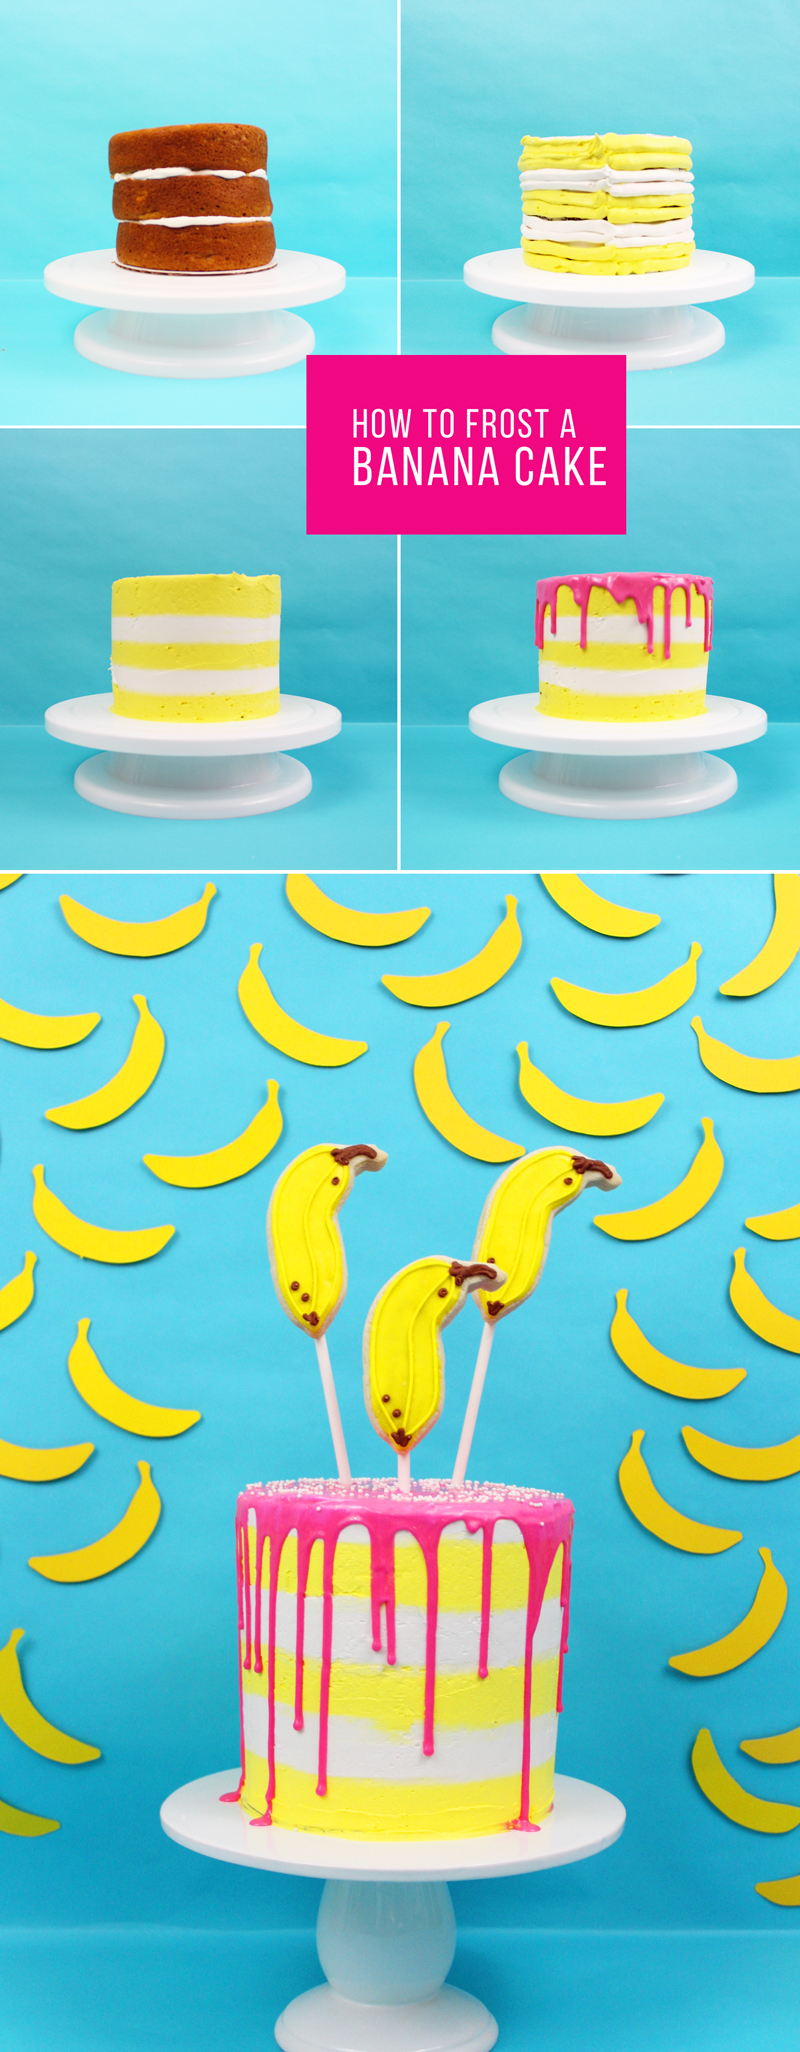 How to make & frost a banana cake